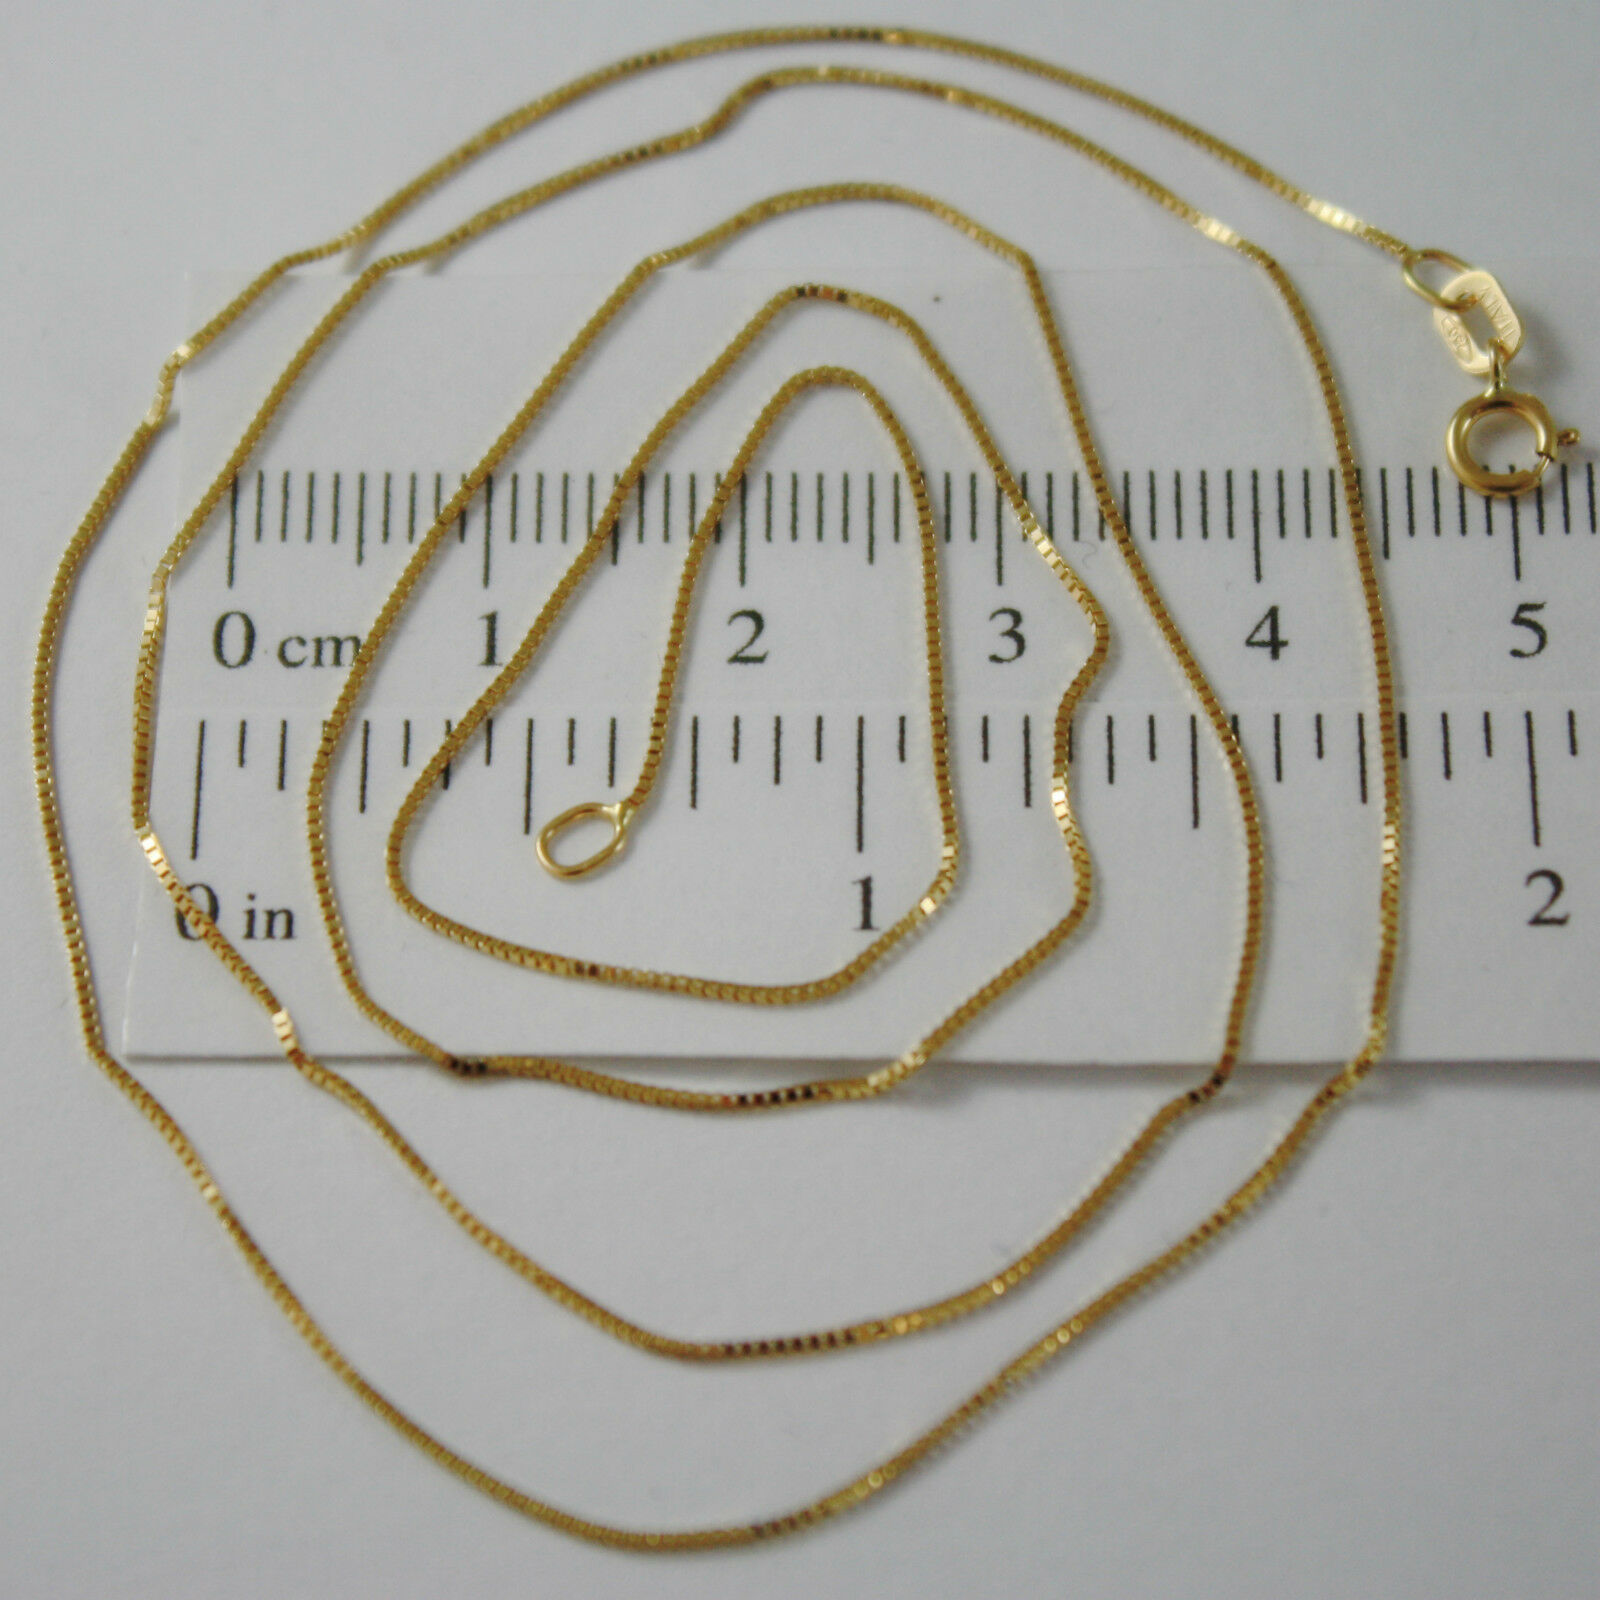 18K YELLOW GOLD CHAIN NECKLACE 0.5 mm MINI VENETIAN MESH 18 INCH. MADE IN ITALY